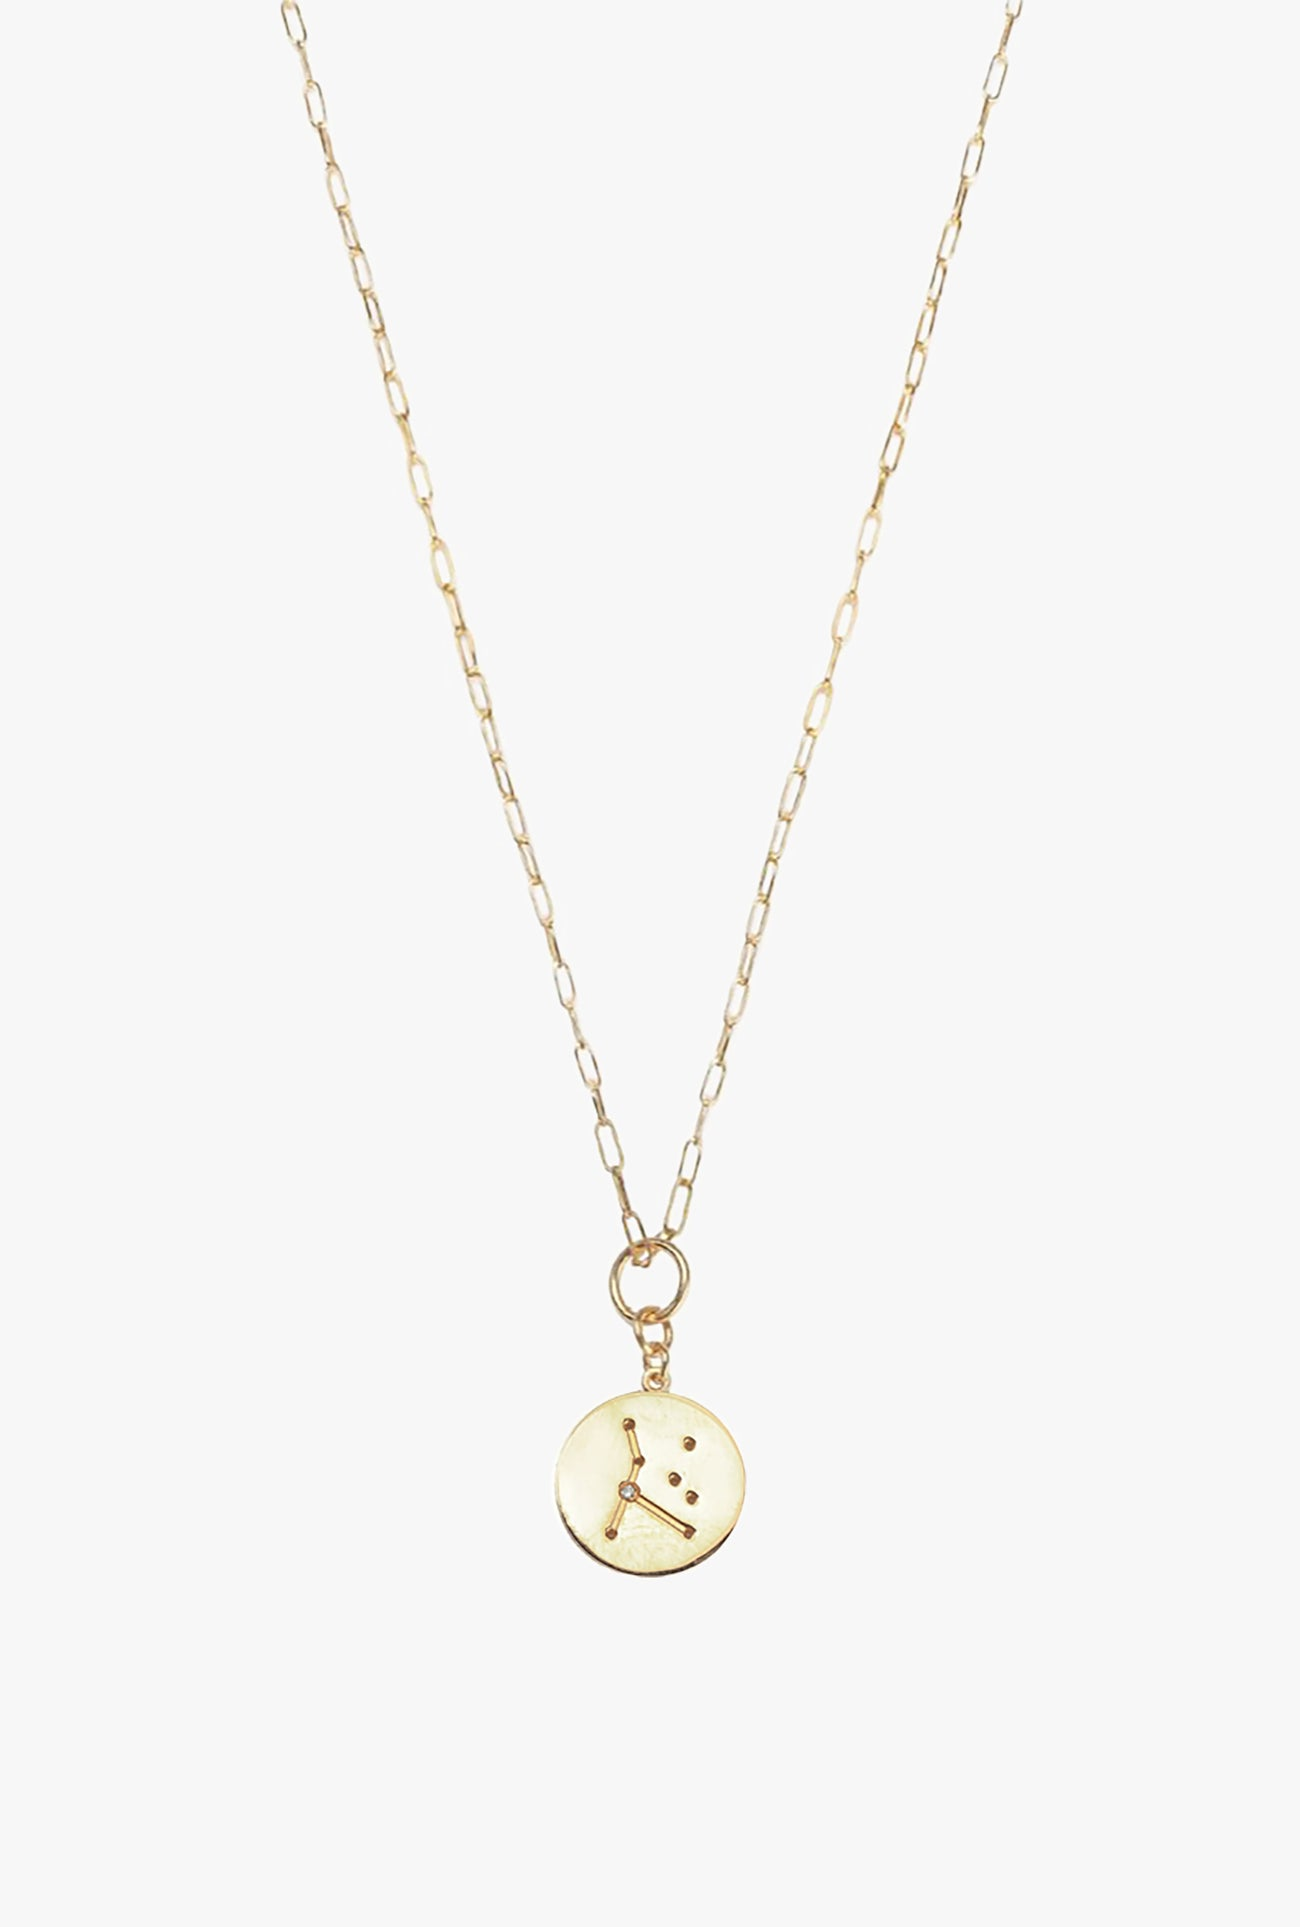 Constellation Cancer Charm Necklace